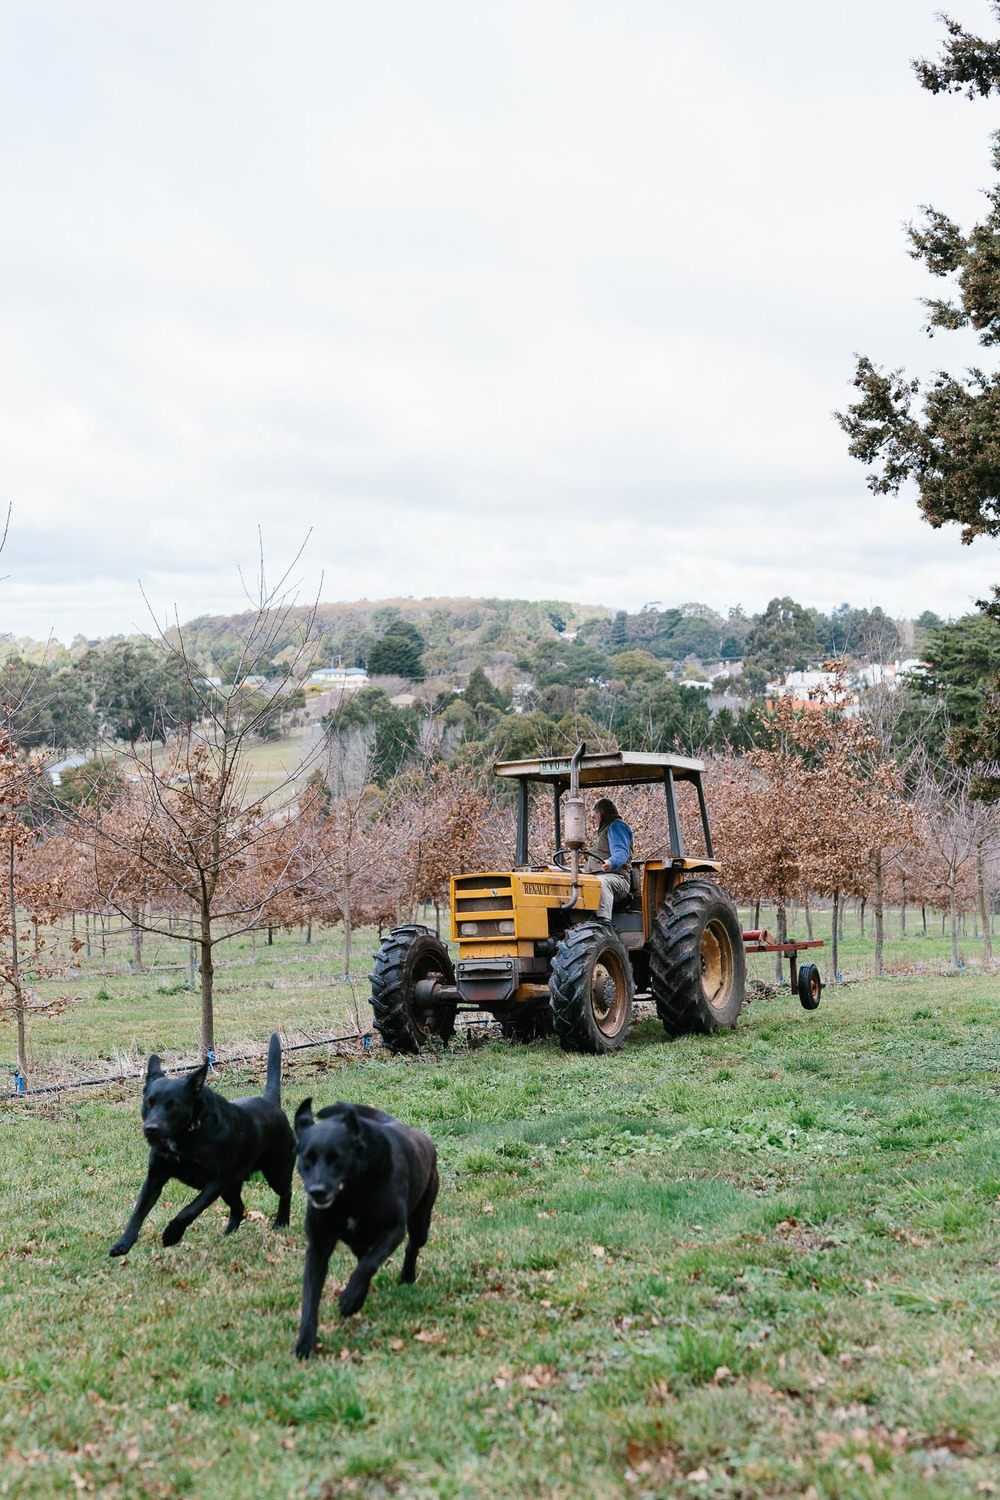 Melbourne lifestyle photographer Marnie Hawson's An Honest Trade project - truffle farmers Ian and Merilyn Woodhouse from Oak Hill Truffles